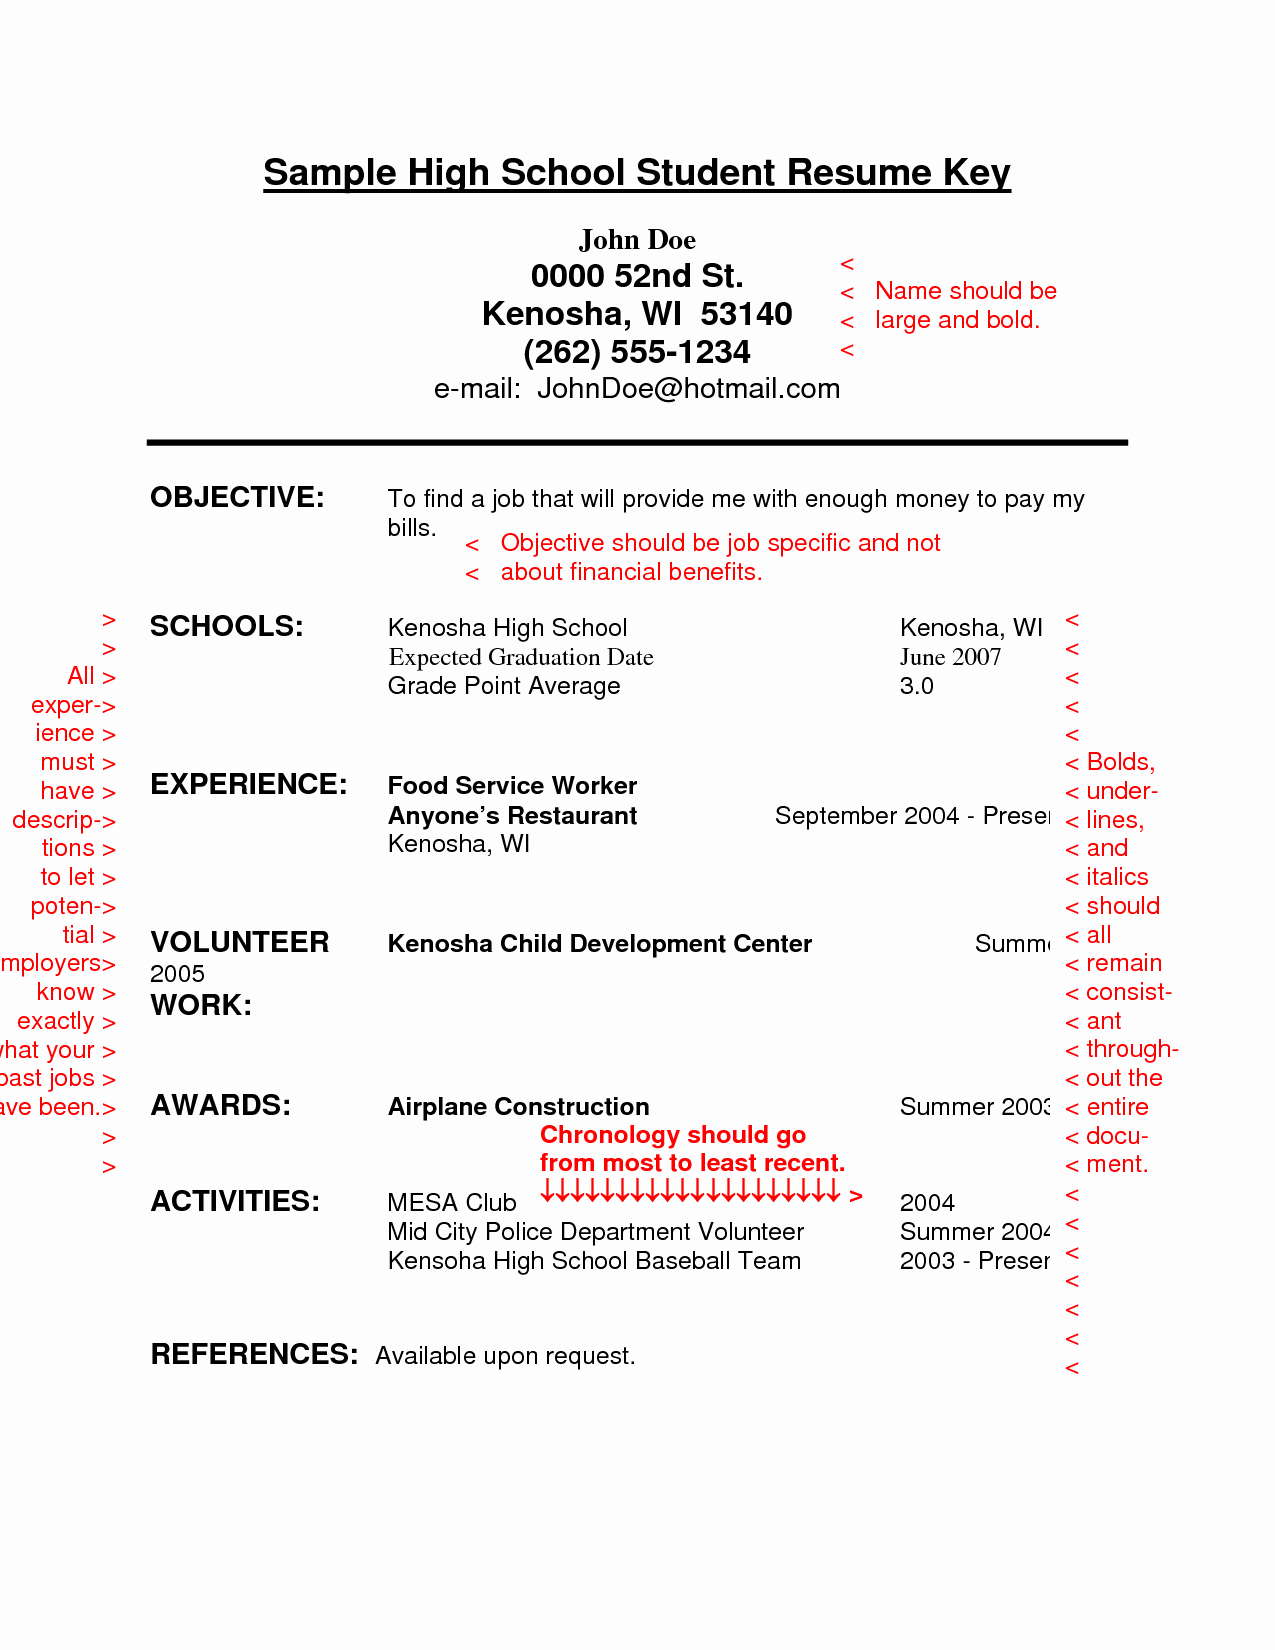 Resume Sample for High School Students with No Experience